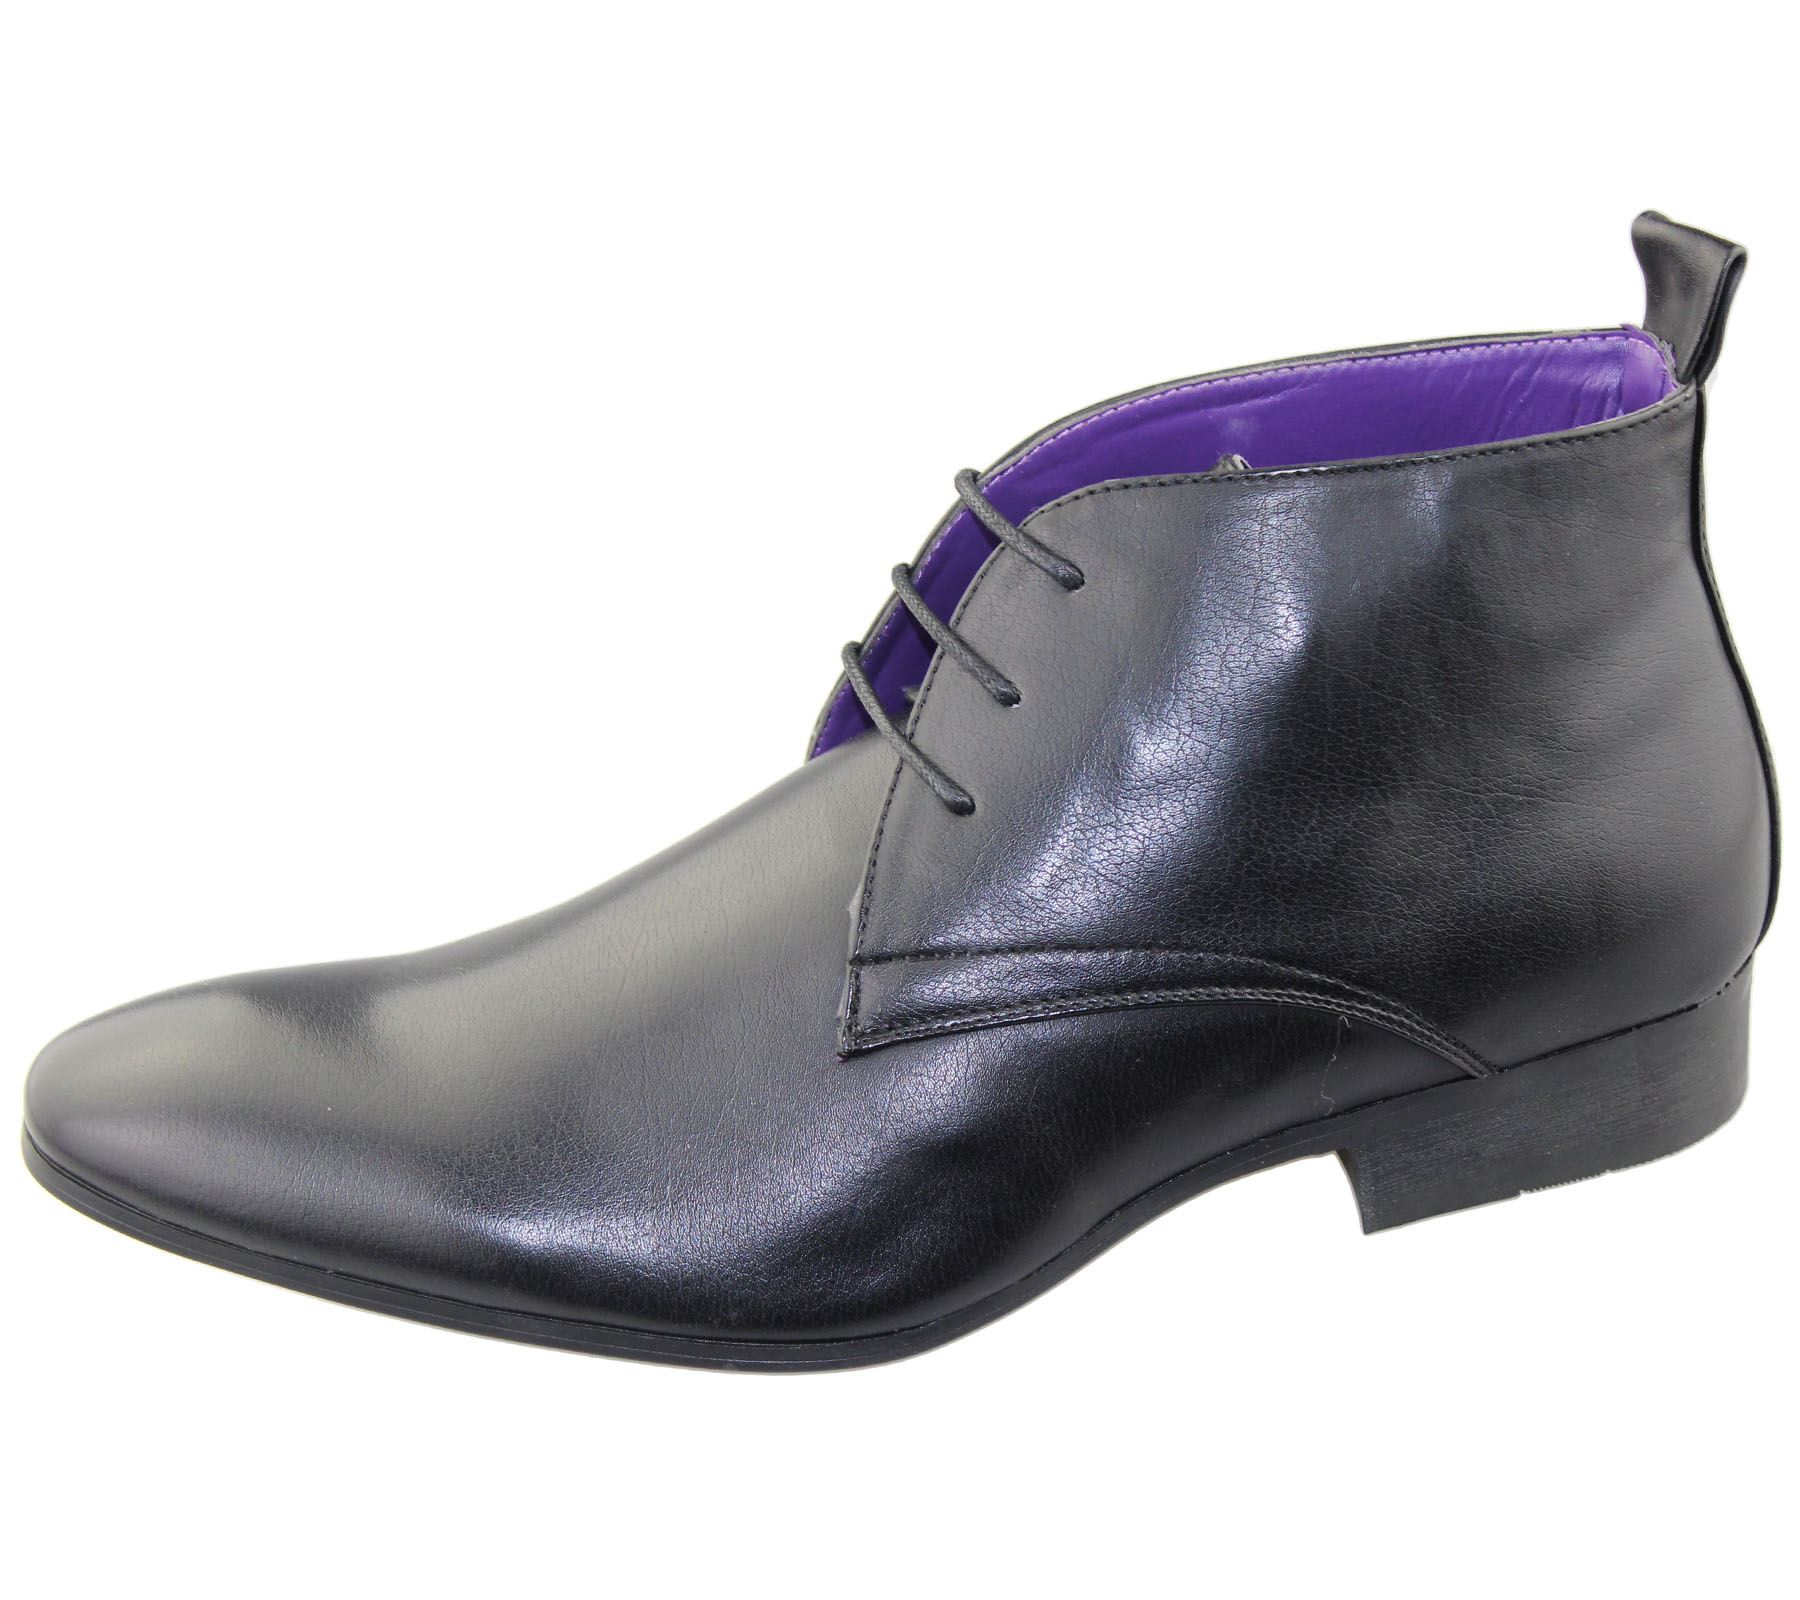 mens office shoes high top wedding casual formal smart